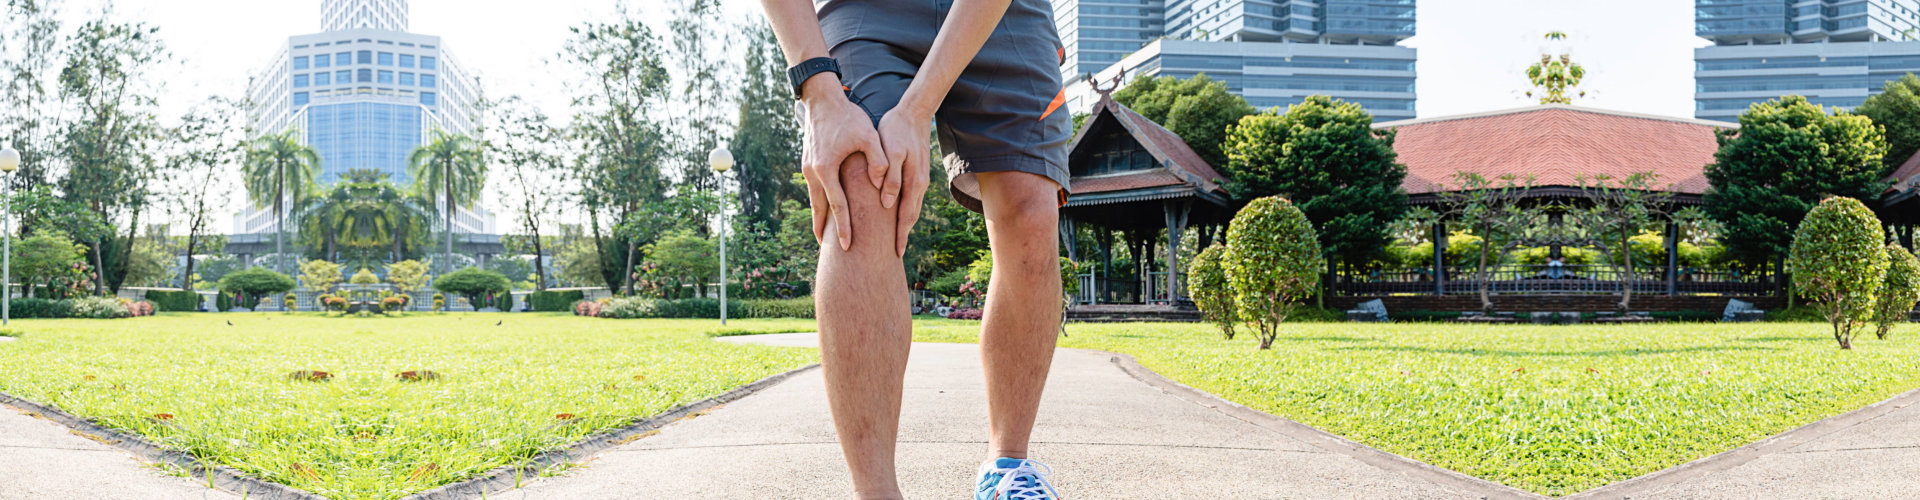 adult man with knee injury